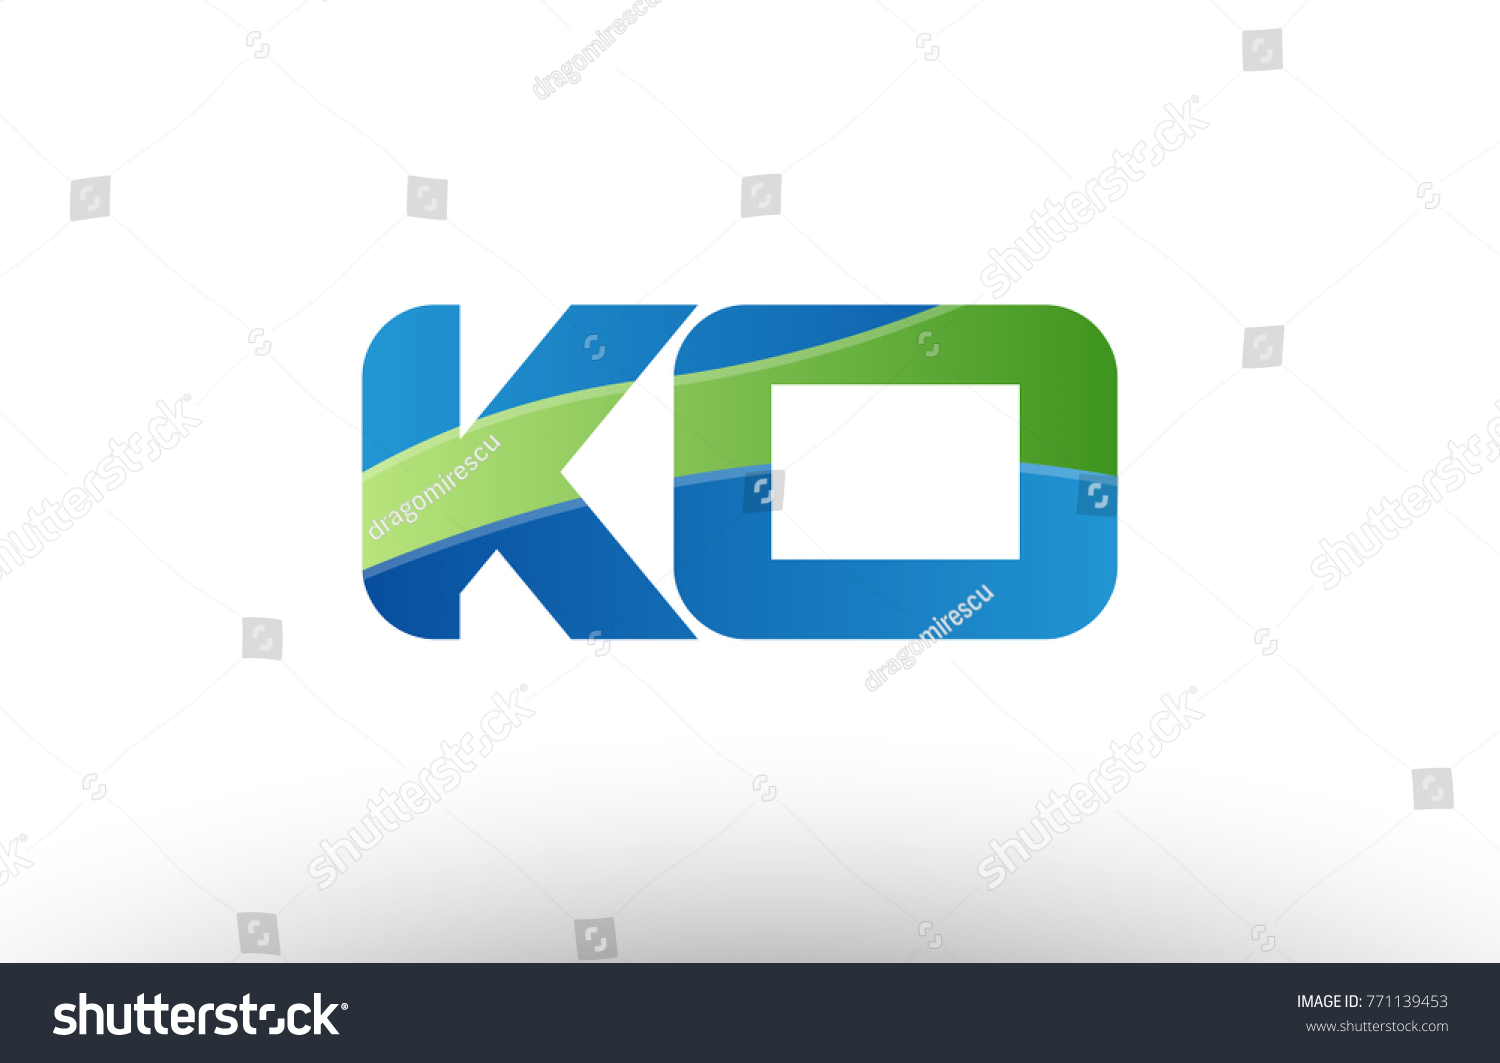 American airlines stock symbol images symbol and sign ideas ko stock symbol image collections symbol and sign ideas design alphabet letter logo combination ko stock buycottarizona